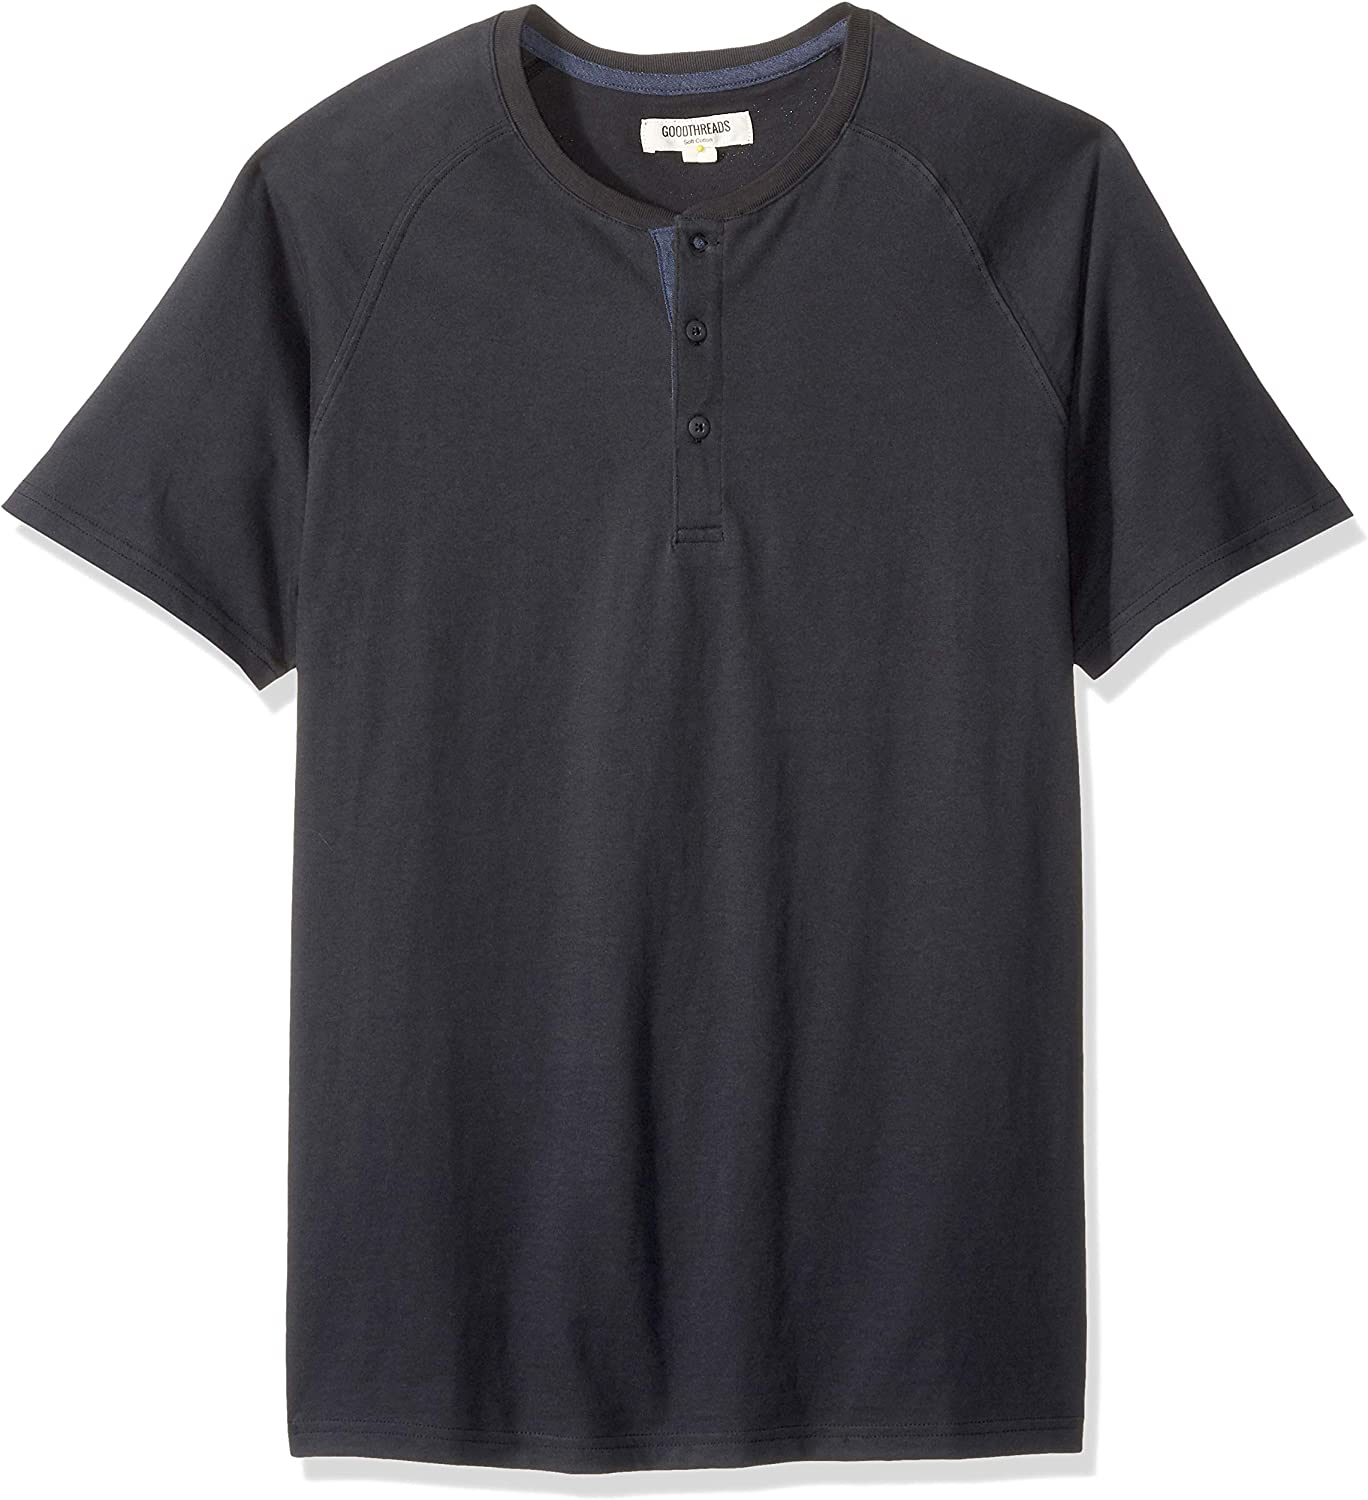 Goodthreads New item Men's Short-Sleeve Sueded Jersey Animer and price revision Henley